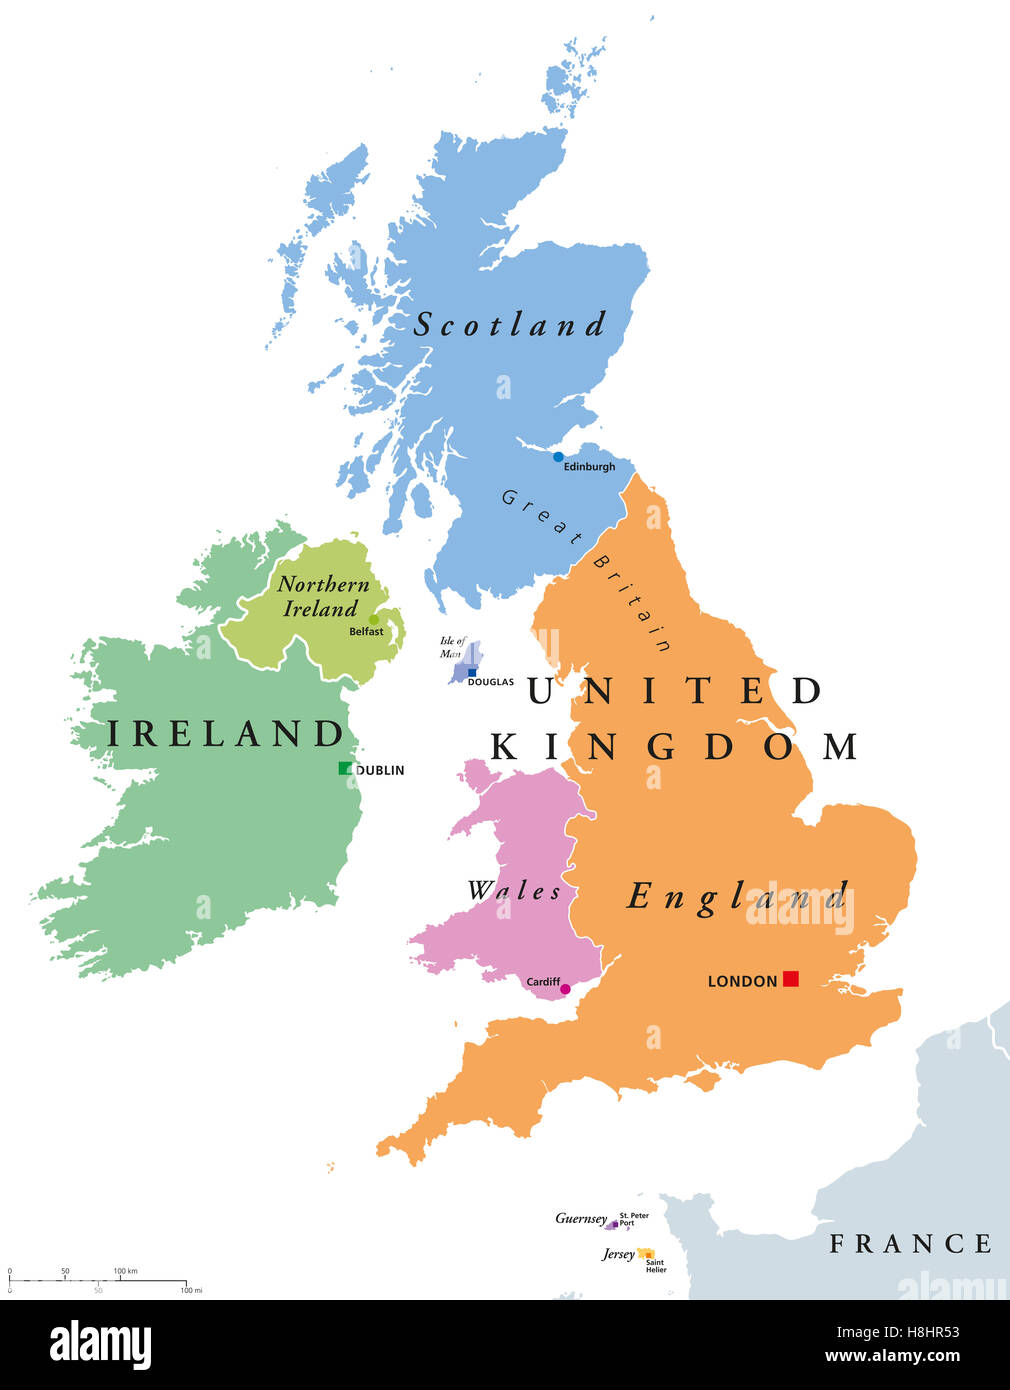 England And Scotland Map United Kingdom countries and Ireland political map. England Stock